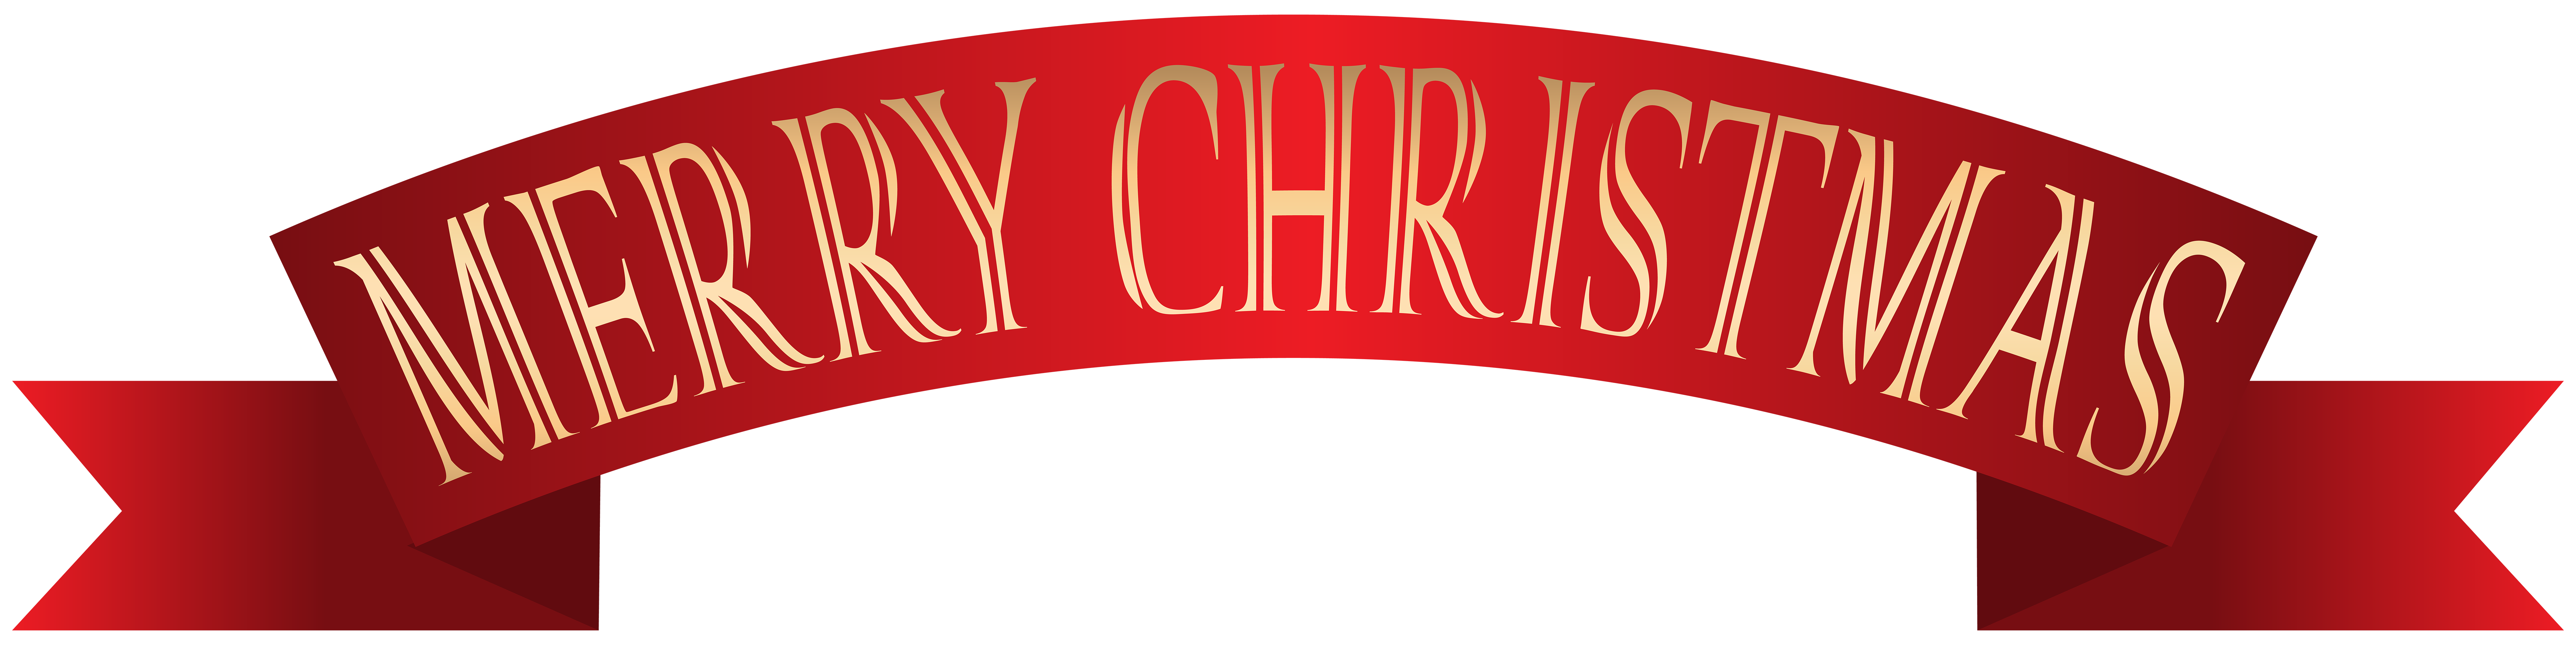 Merry christmas banner png. Transparent clip art gallery